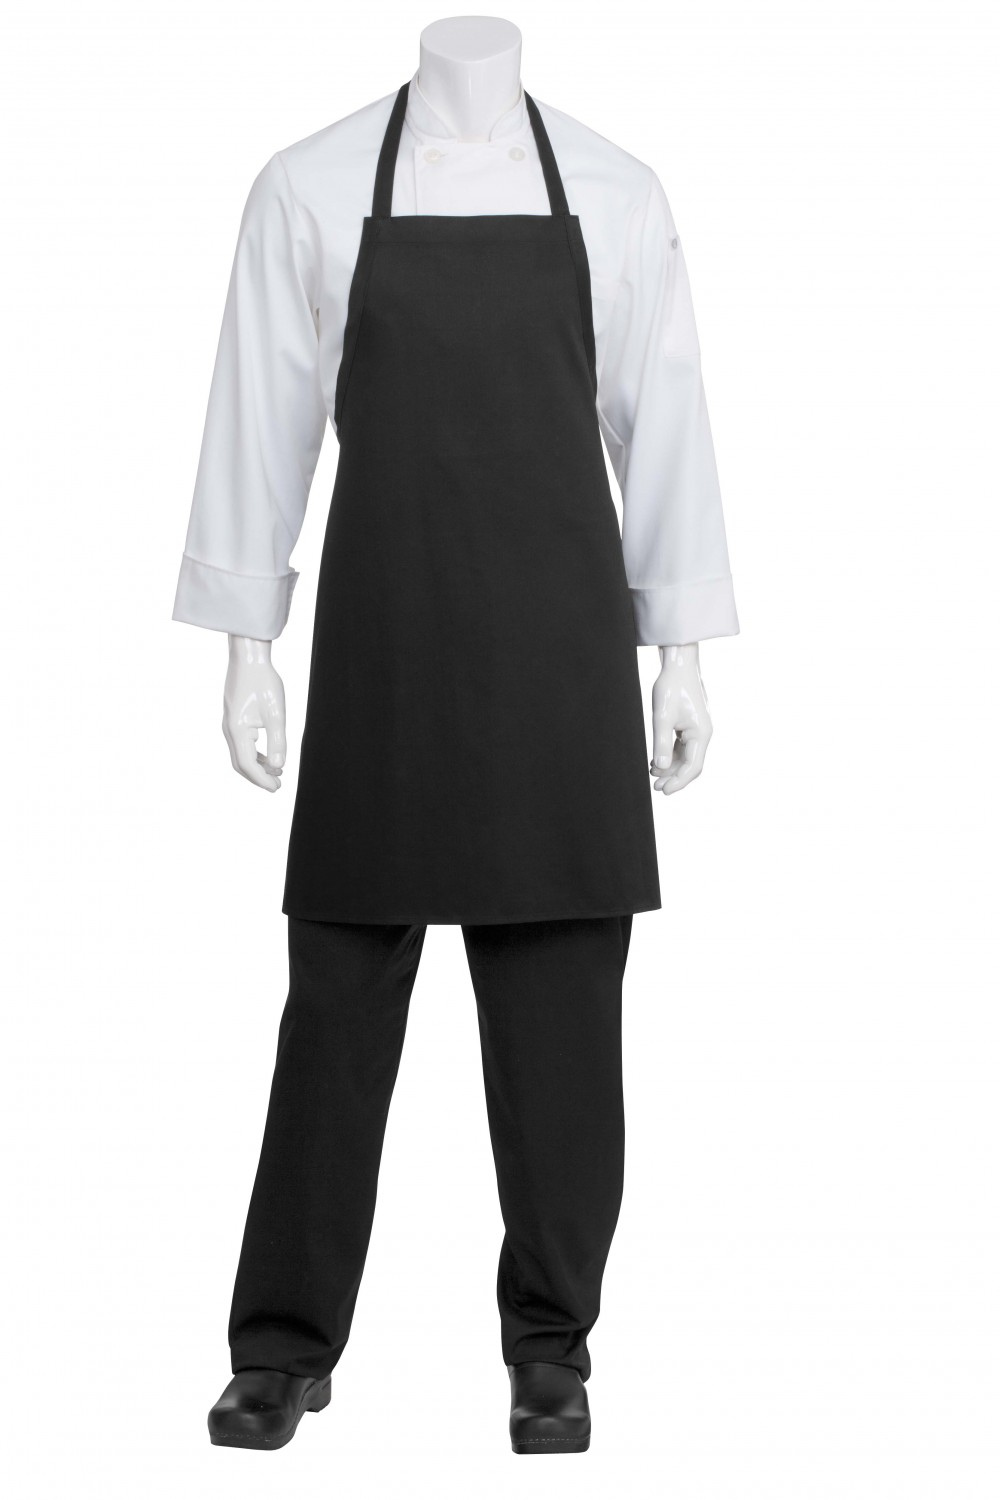 Chef Works APKBL-BLK Black Basic Bib Apron